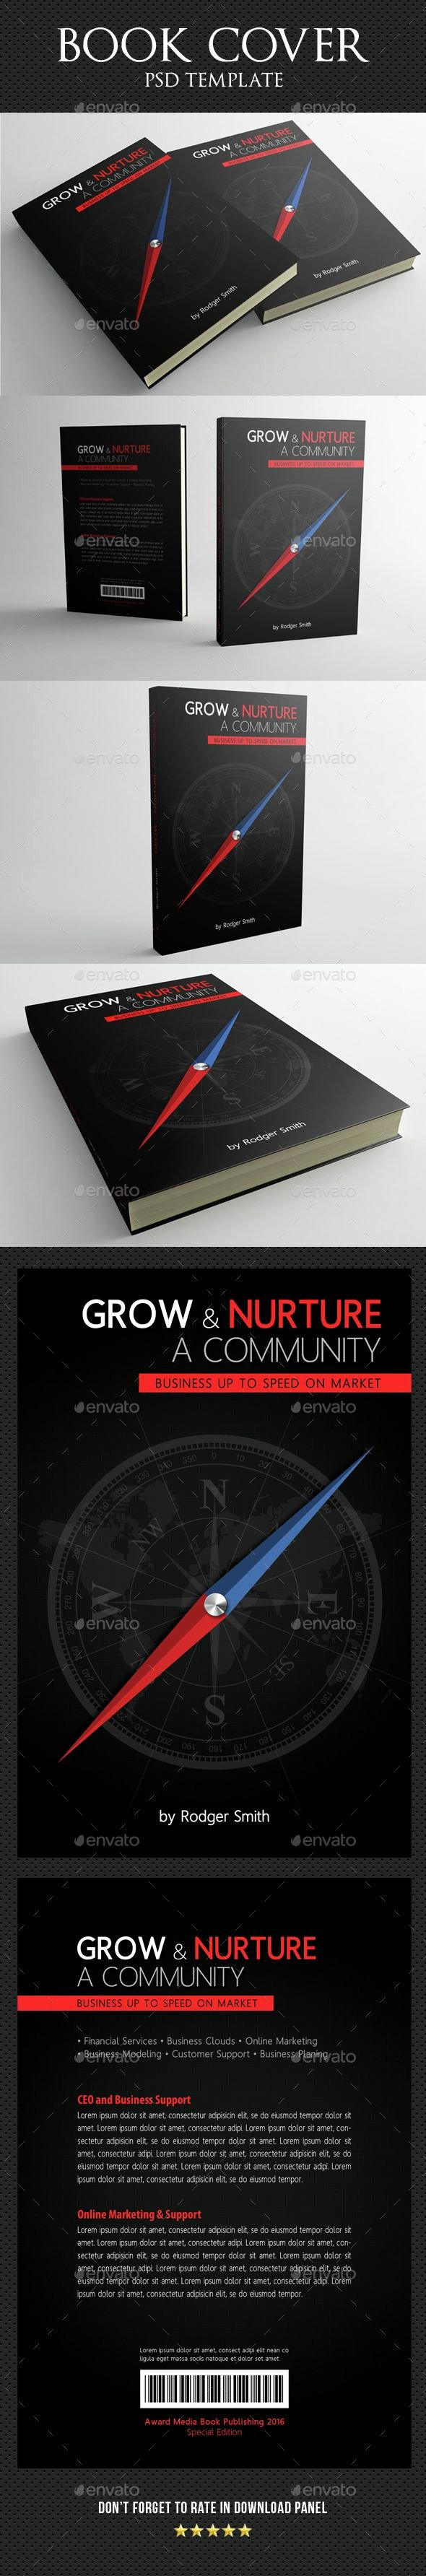 Book Cover Template Photoshop New 25 Best Ideas About Book Cover Design Template On